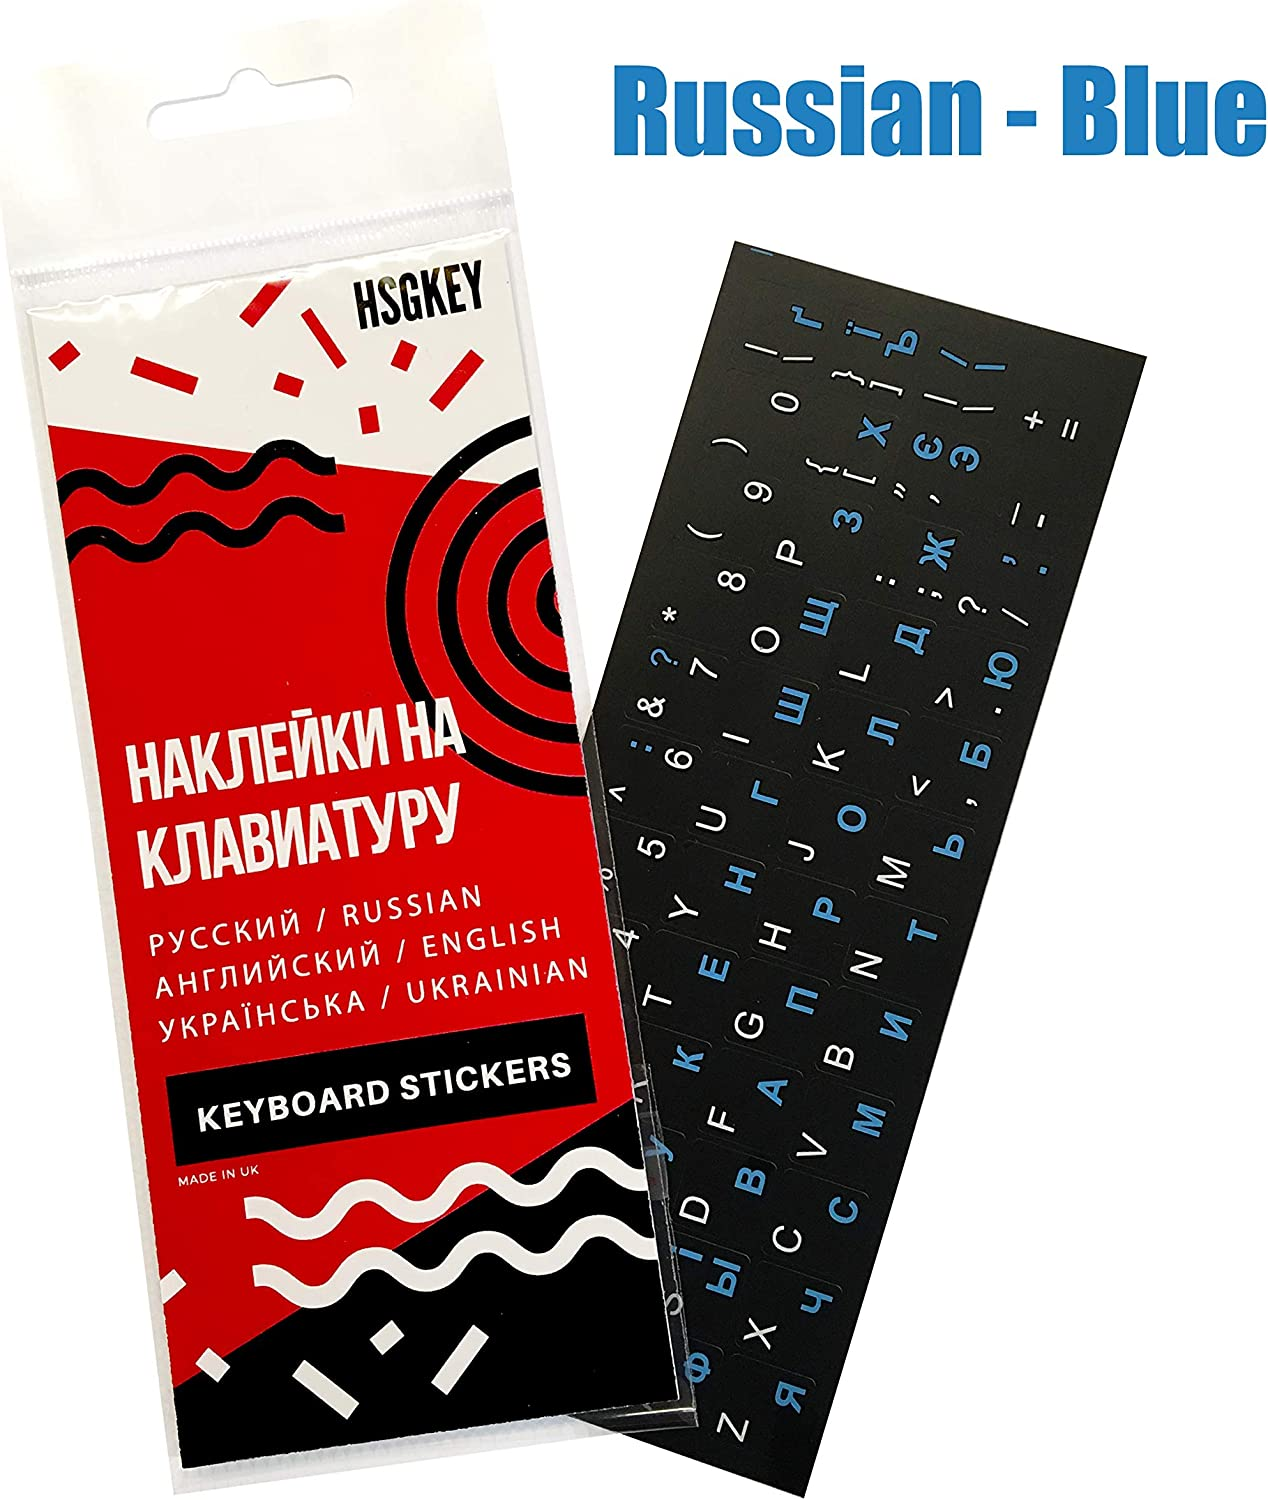 Universal Russian Keyboard Stickers Replacement White/Blue Lettering Black Background for Notebook Computer Laptop Desktop PC English Ukrainian Ergonomic Cyrillic, Unit Size: 0.47x0.47 (Matte)